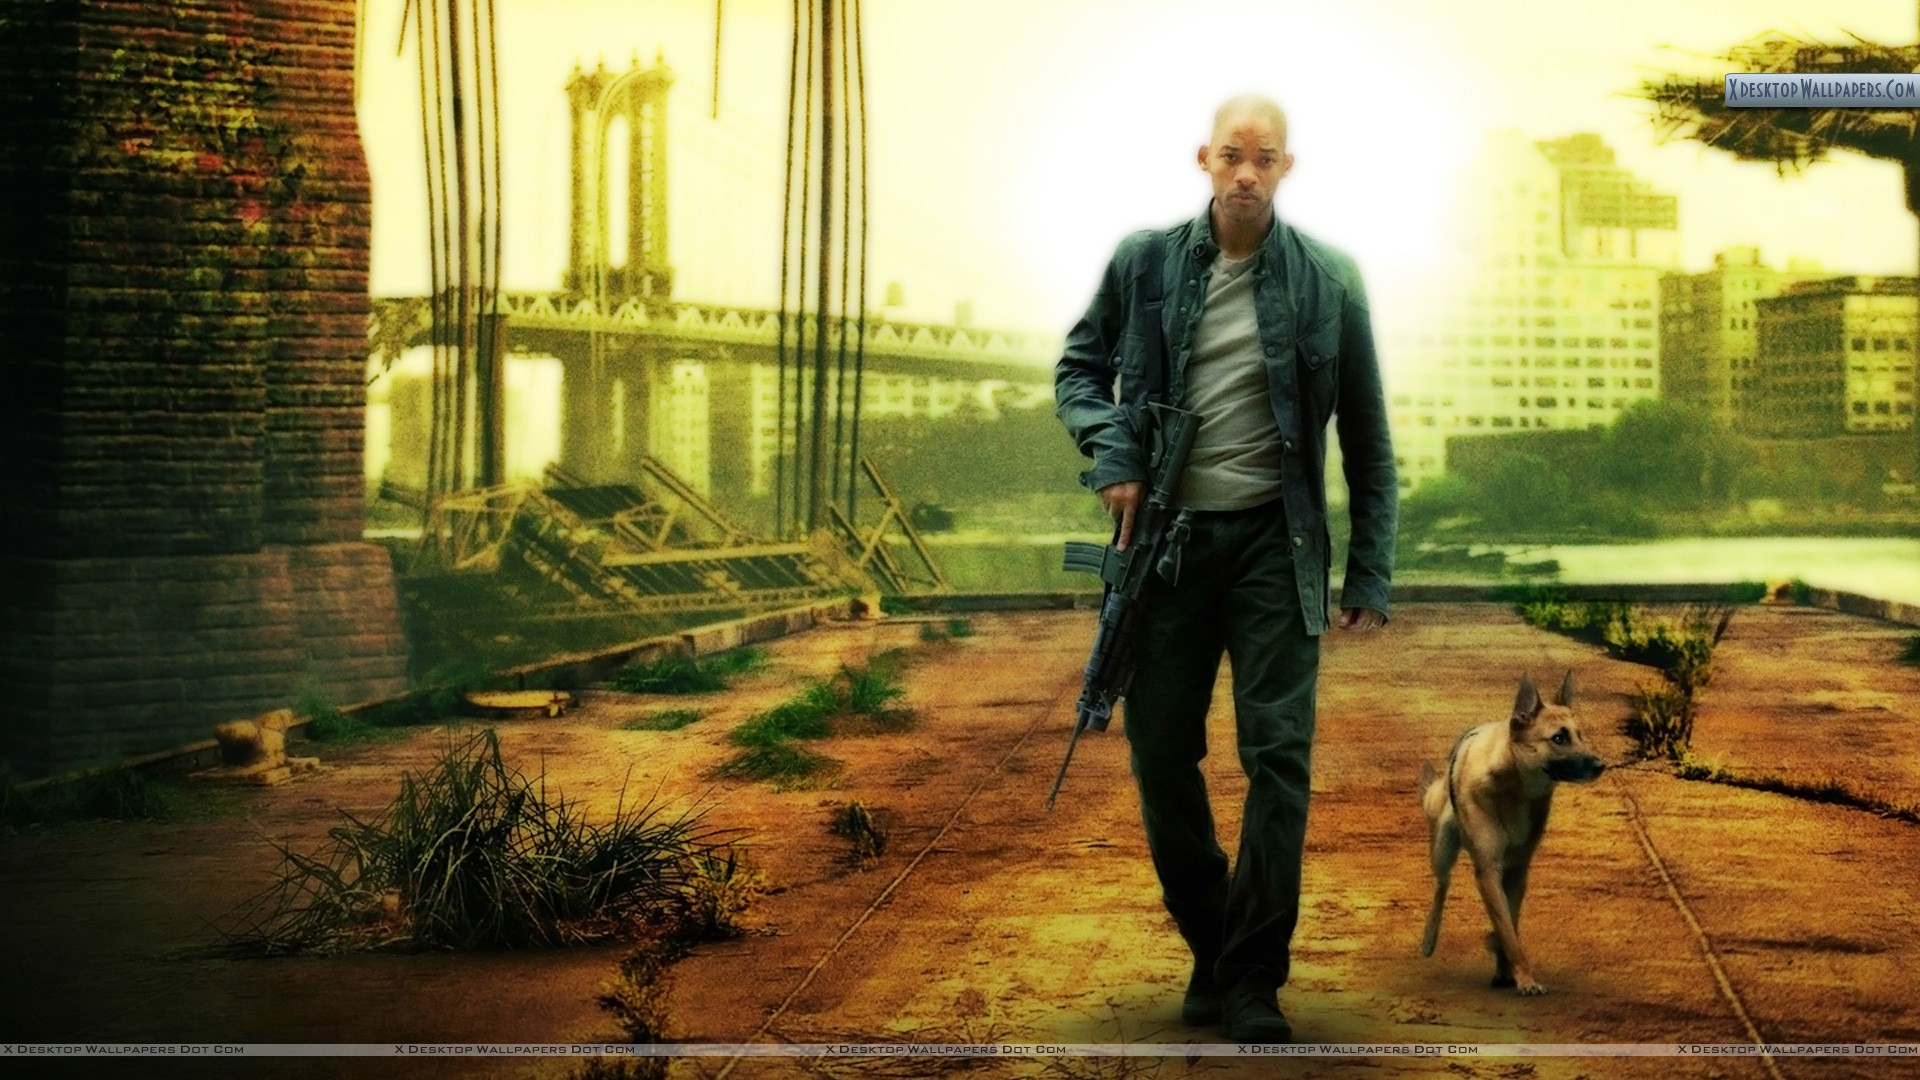 I Am Legend Wallpapers Photos amp Images in HD 1920x1080